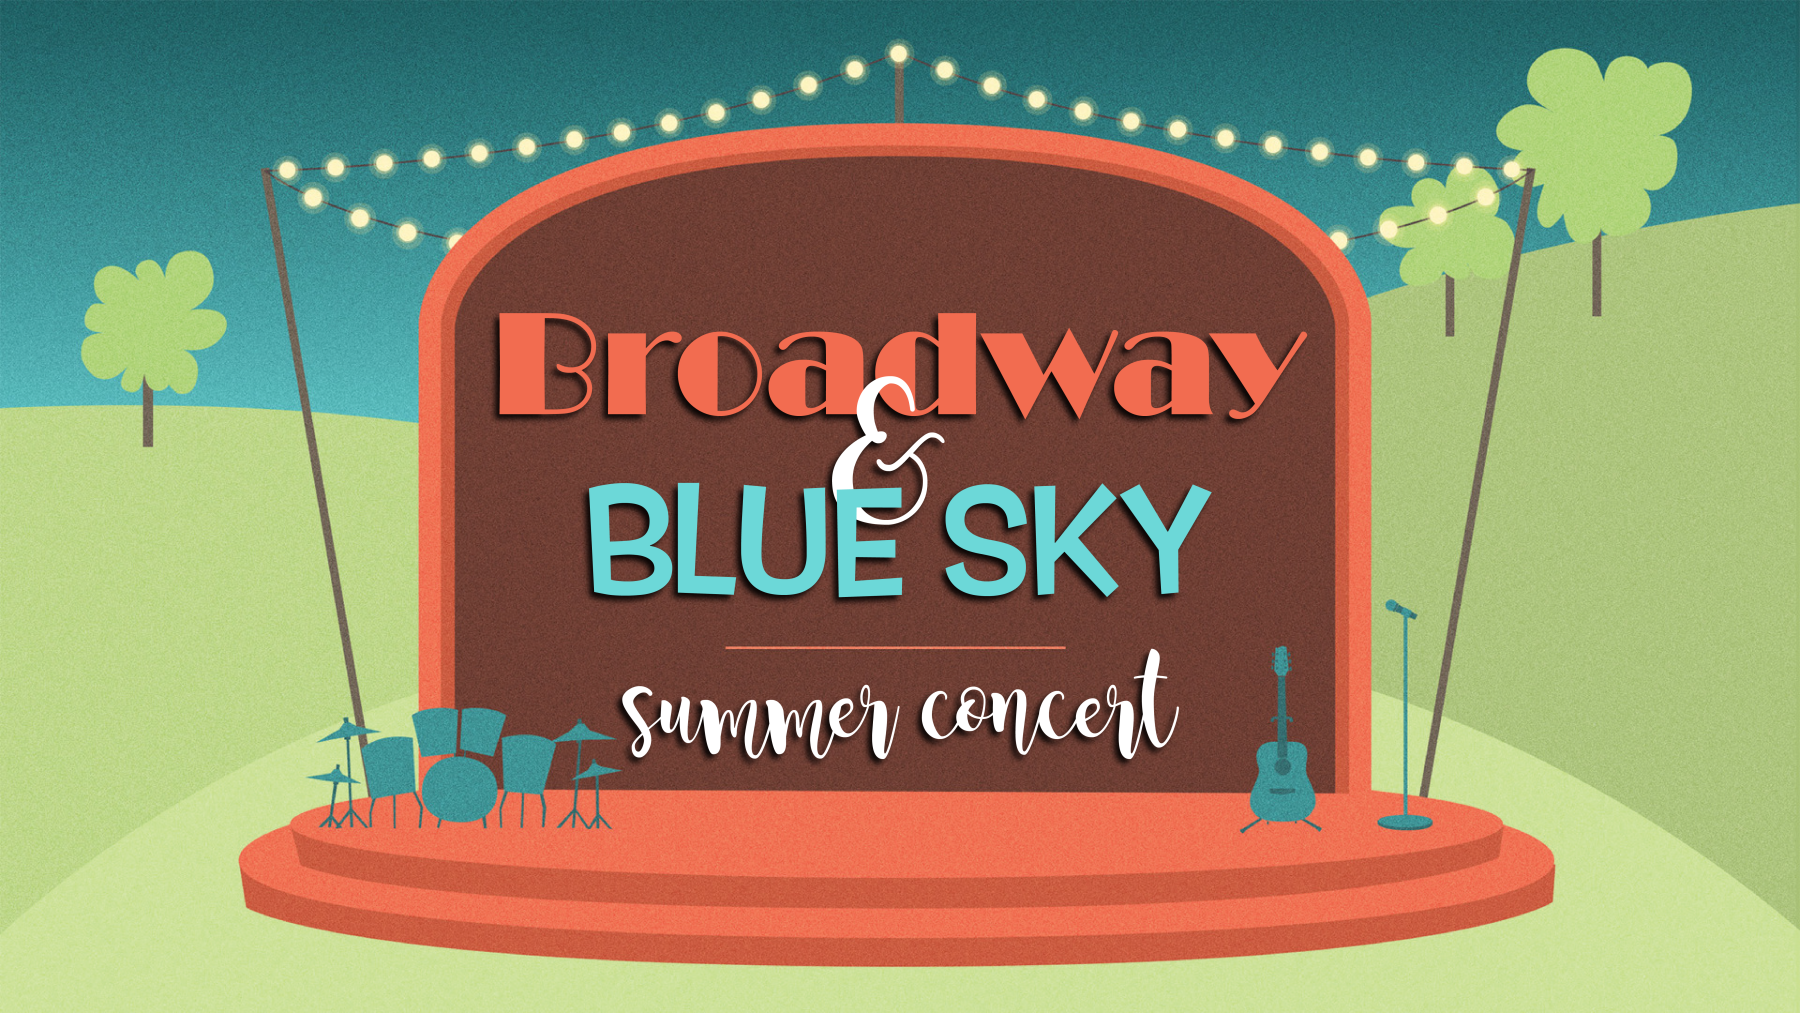 Broadway and Blue Sky